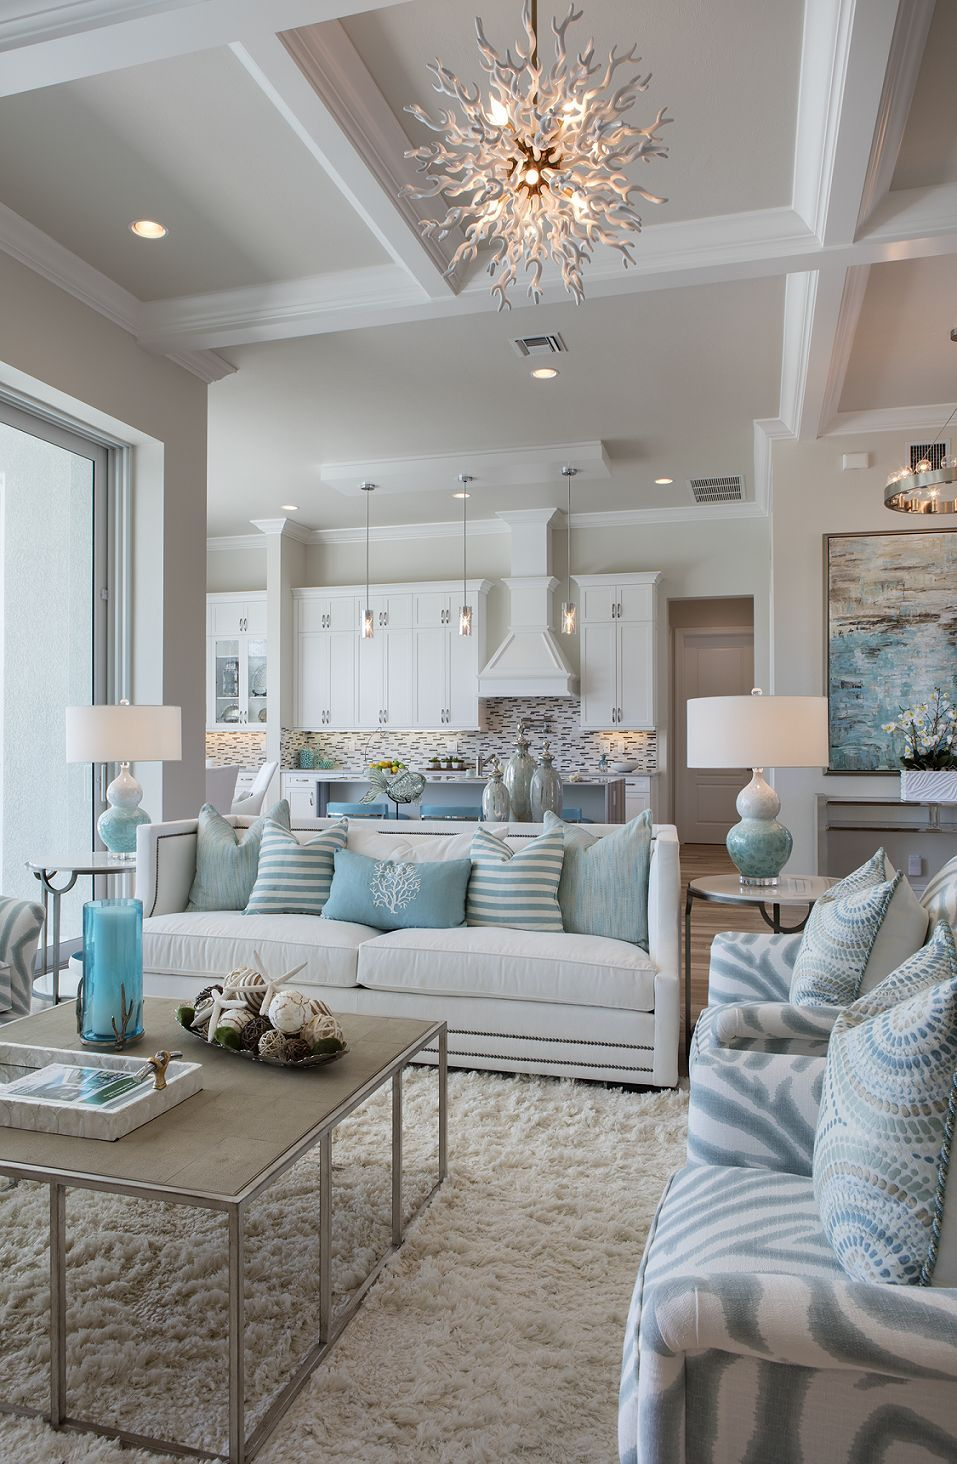 Light Blue White Home Decor With Different Patterns And Textures